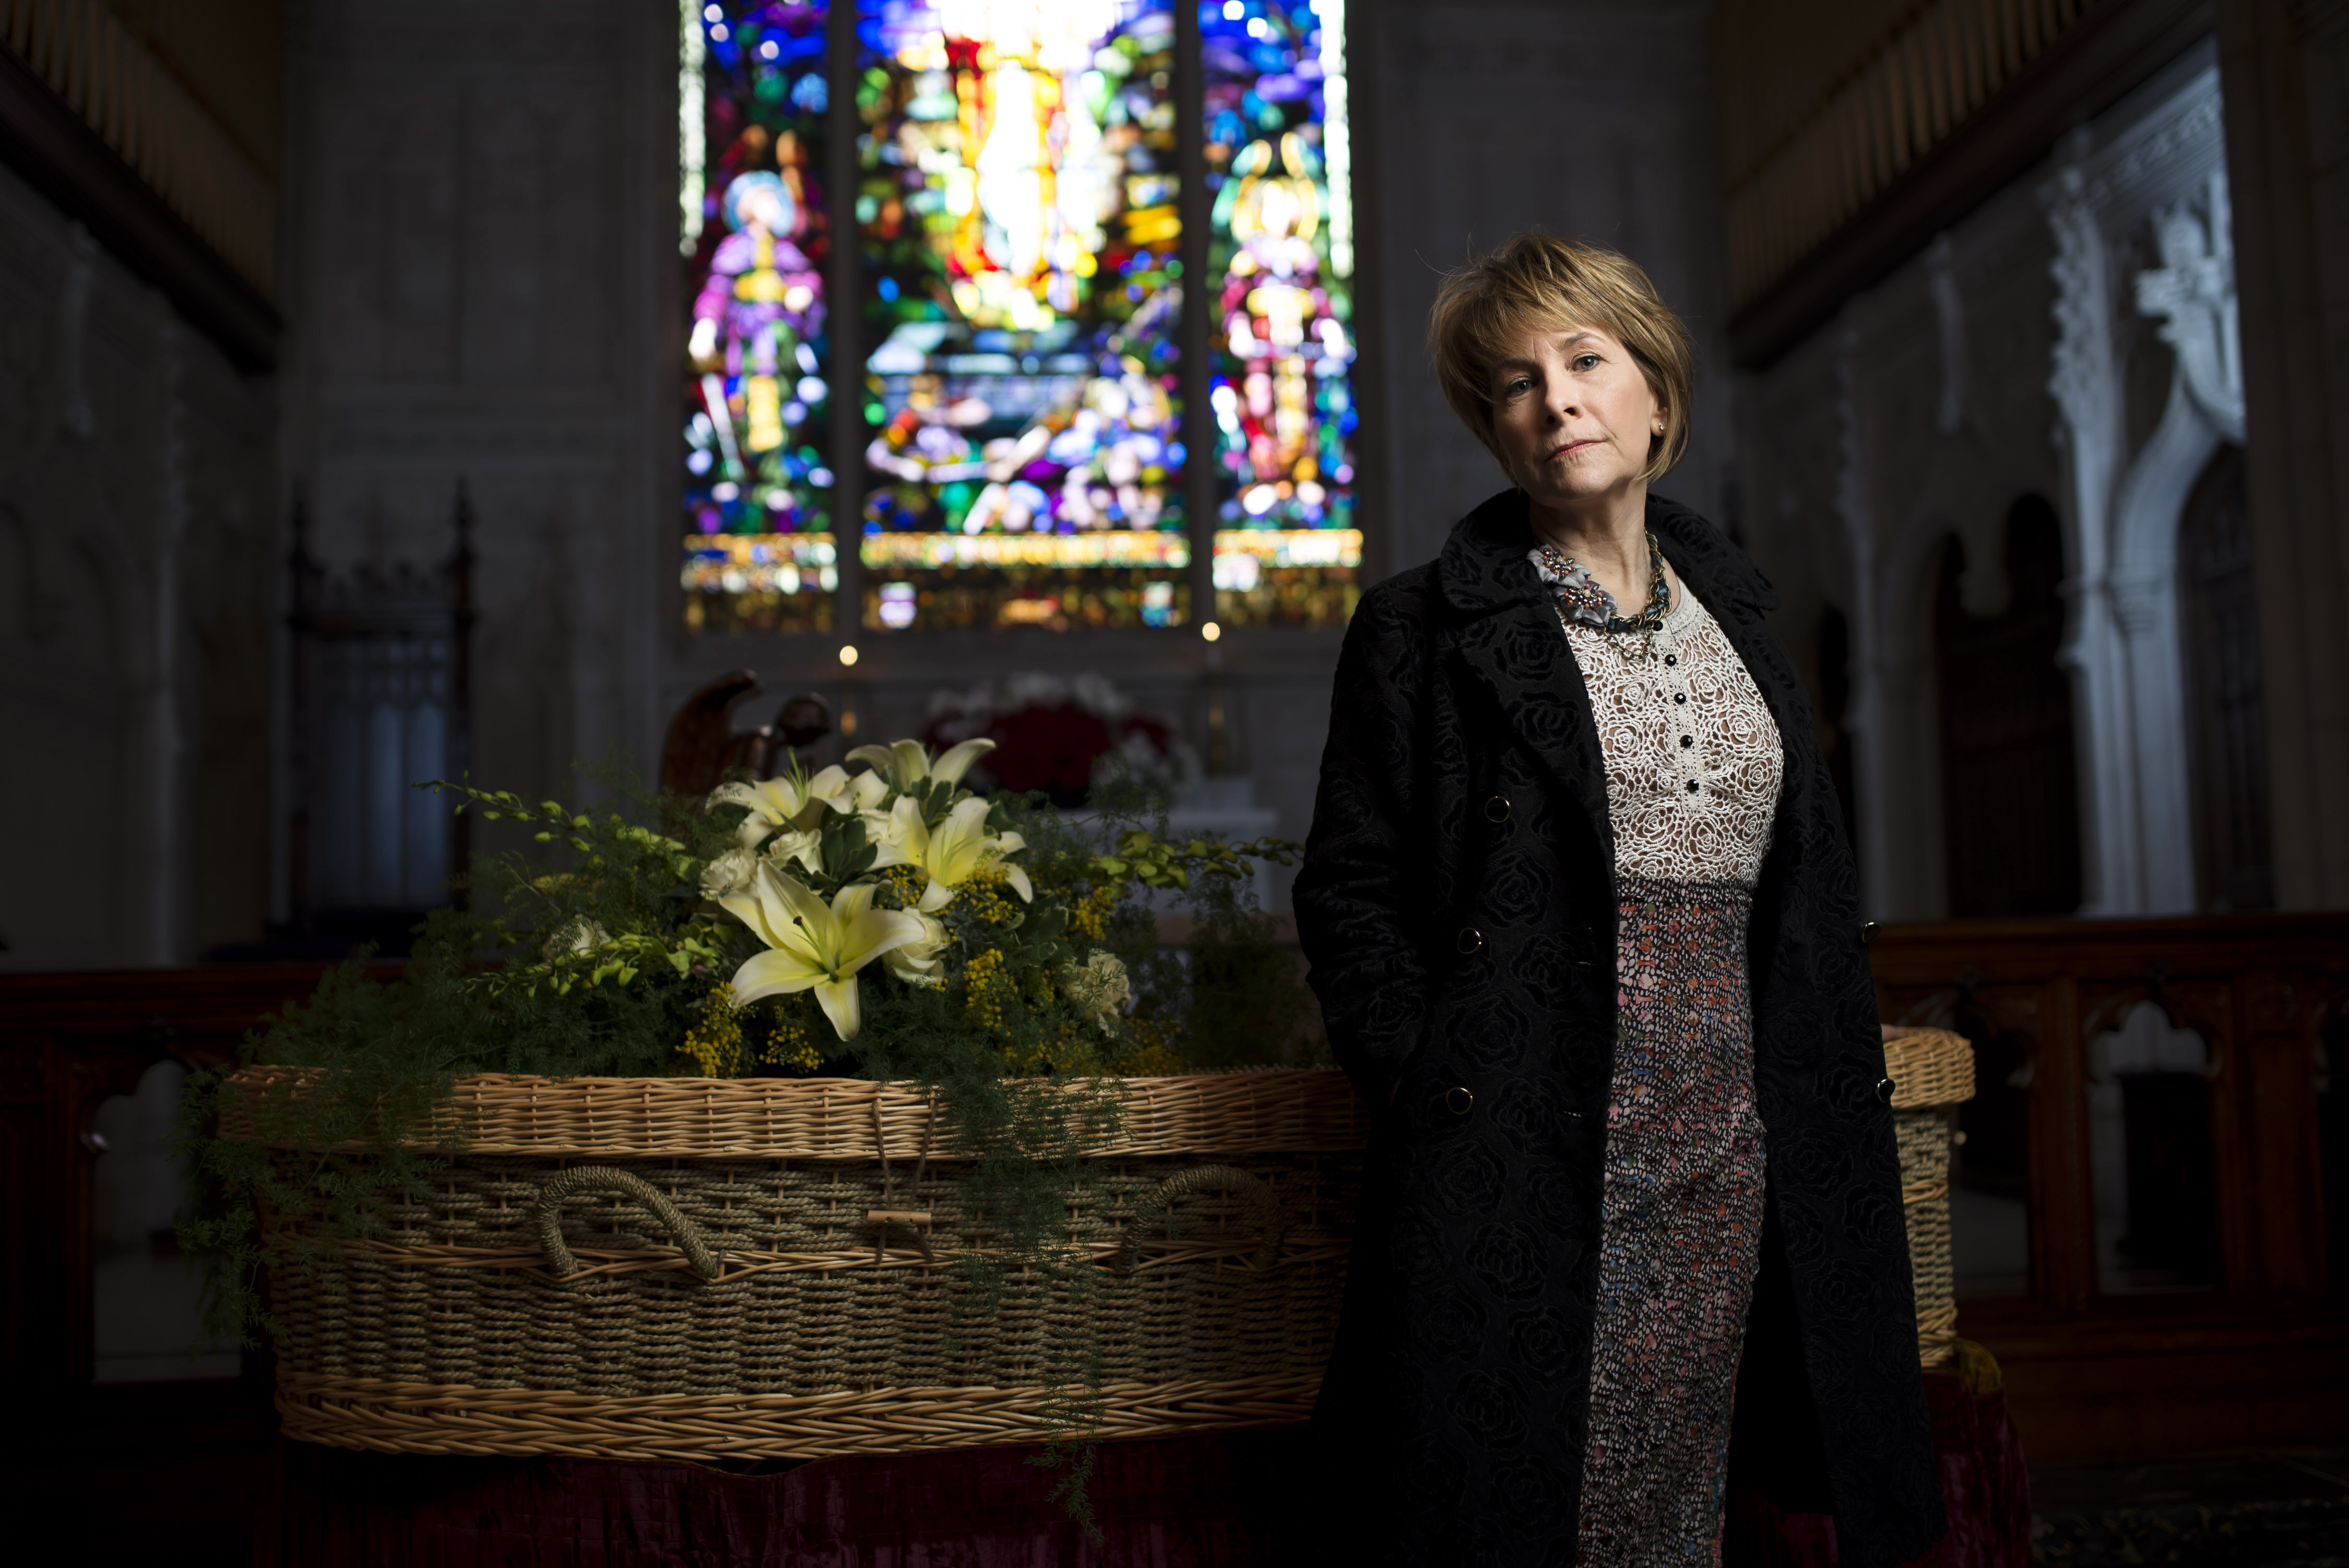 Amy Cunningham believes that as baby boomers die in increasing numbers, the environmentally friendly approach to funerals will become even more popular.